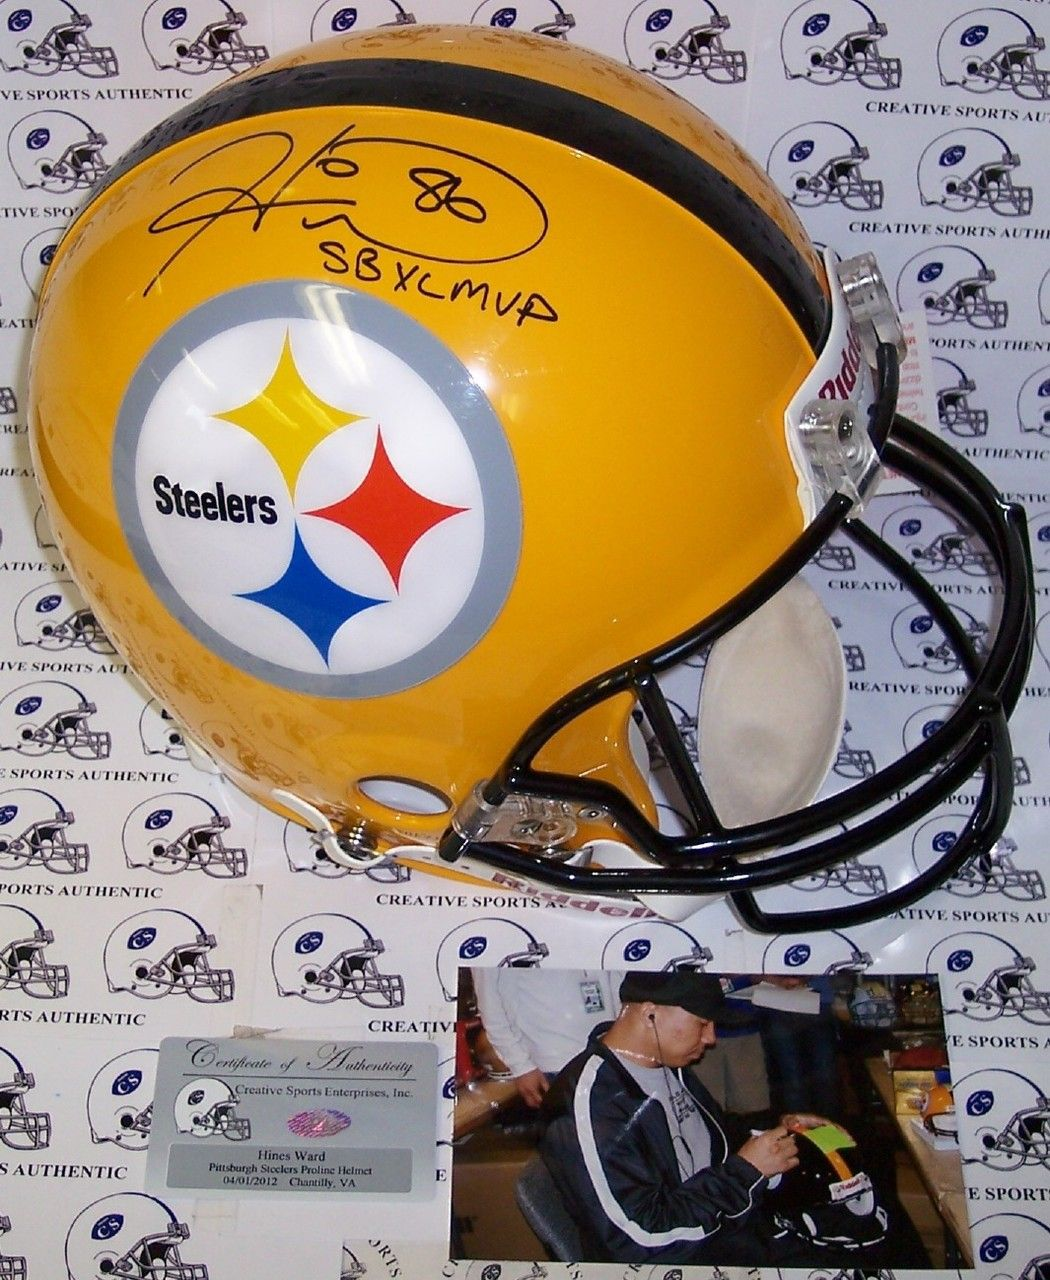 e36222a574f Hines Ward Autographed Hand Signed Pittsburgh Steelers Yellow Authentic  Helmet - PSA/DNA